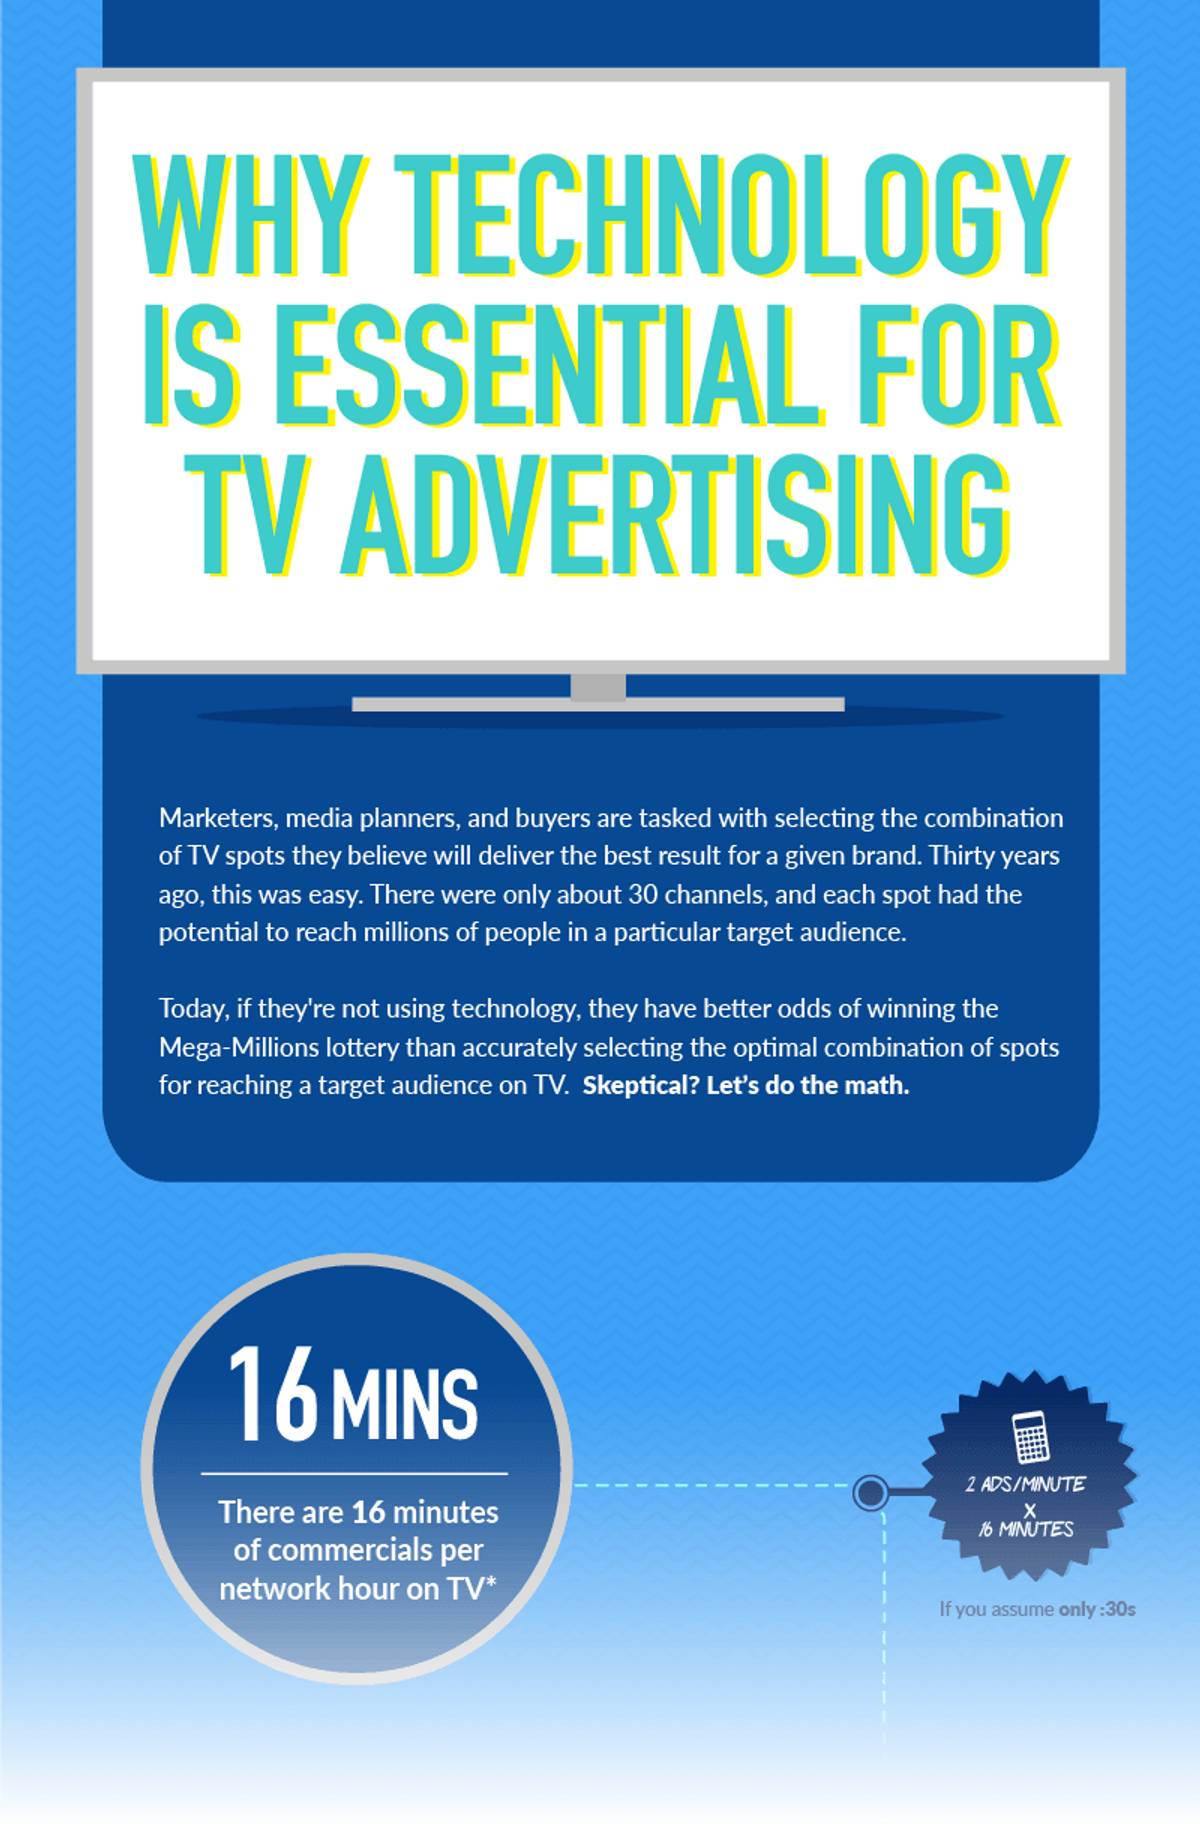 Image of Why Technology Is Essential for TV Advertising infographic.